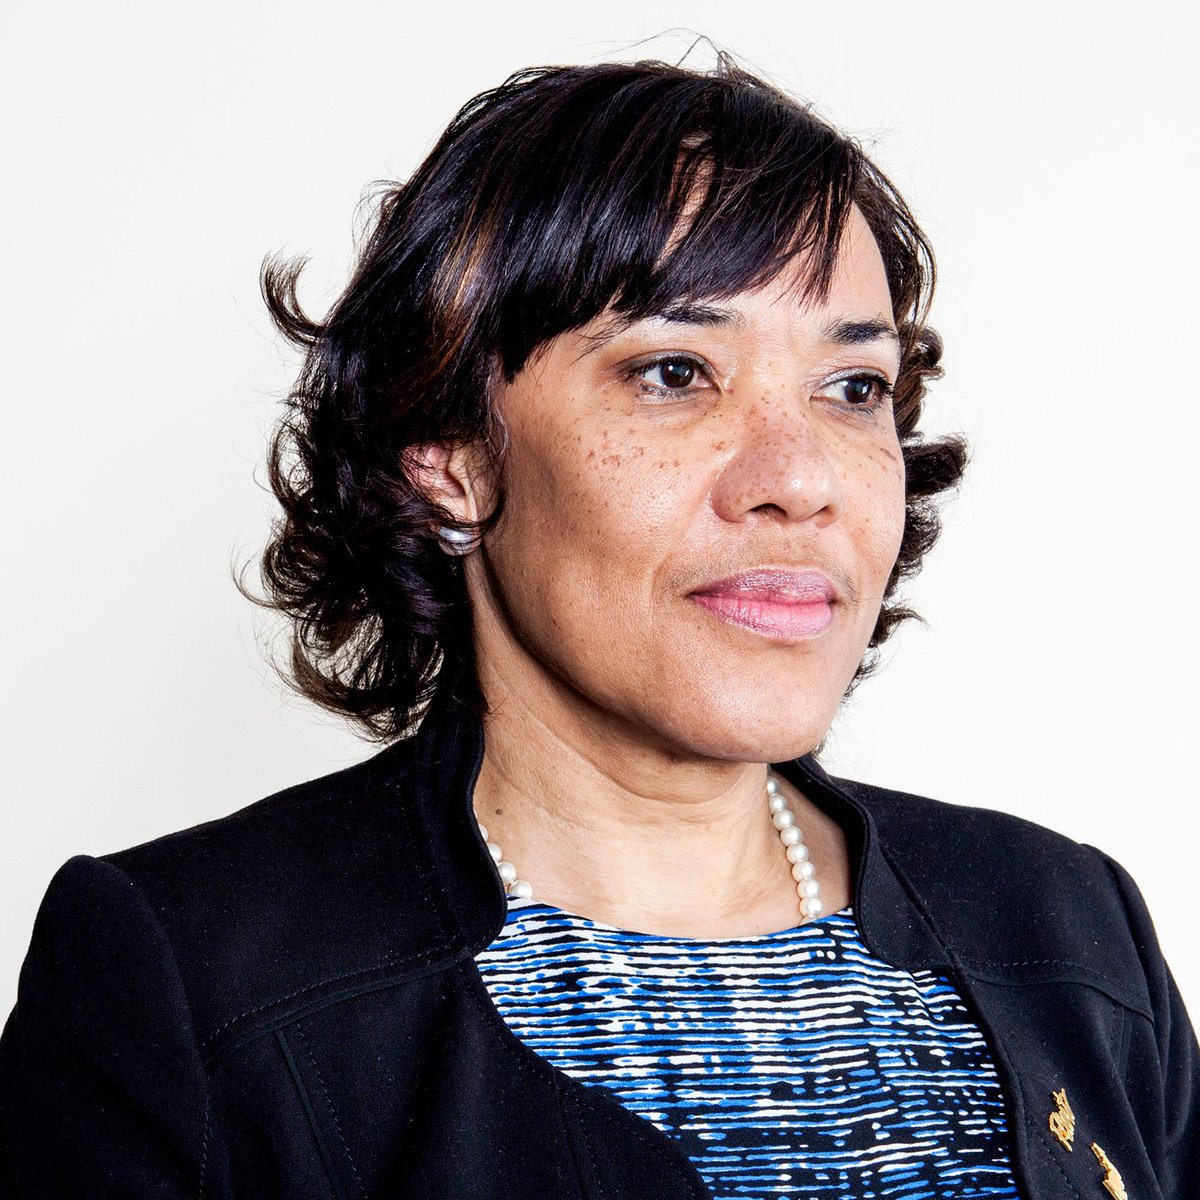 Lawsuit filed against Flint Democrat mayor for redirecting water donations to personal campaign fund